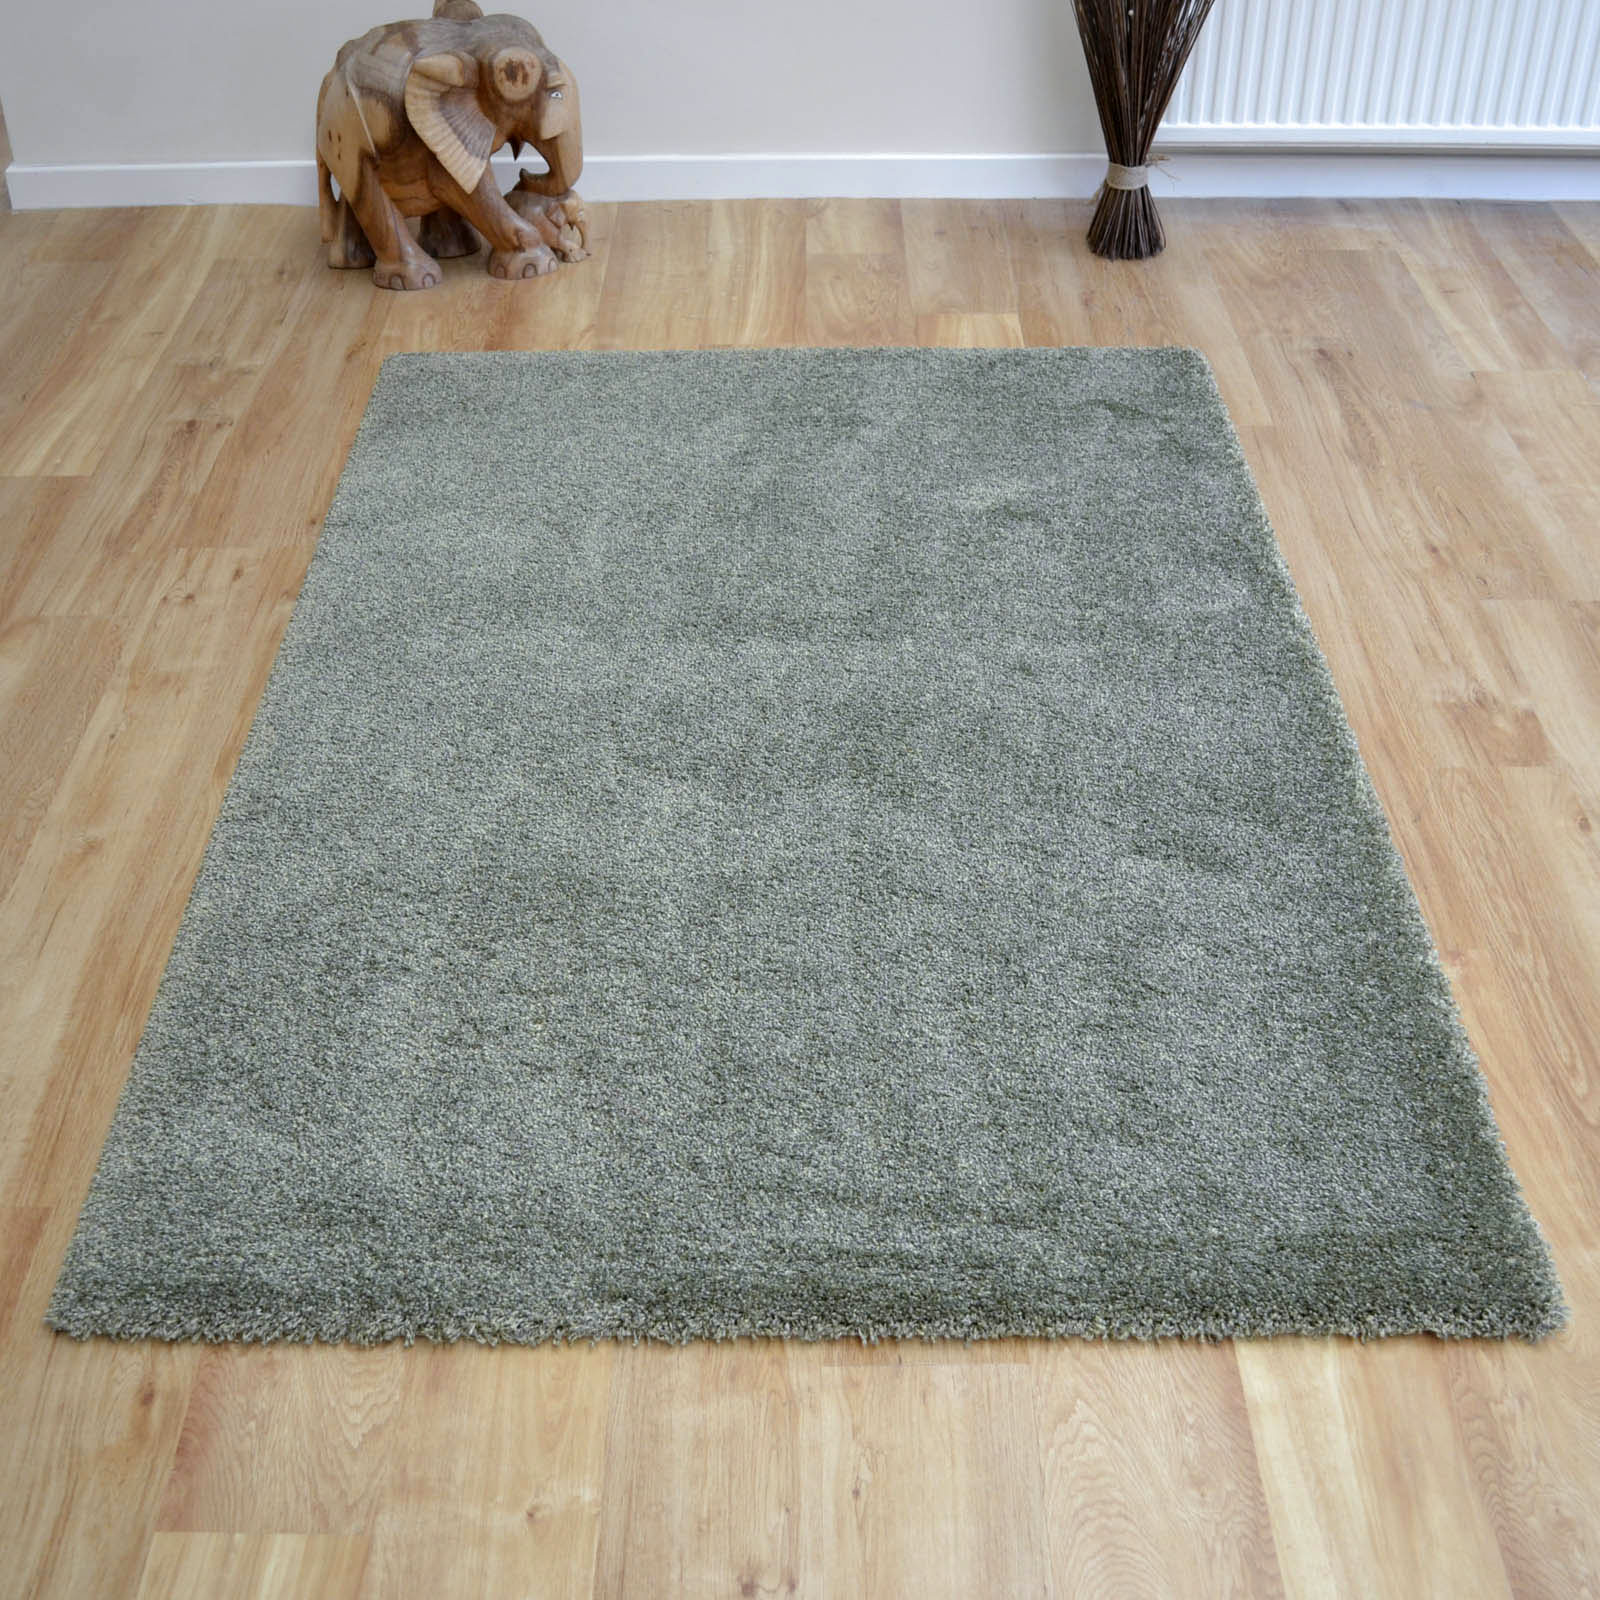 Mehari Rugs 23001 4245 in Green